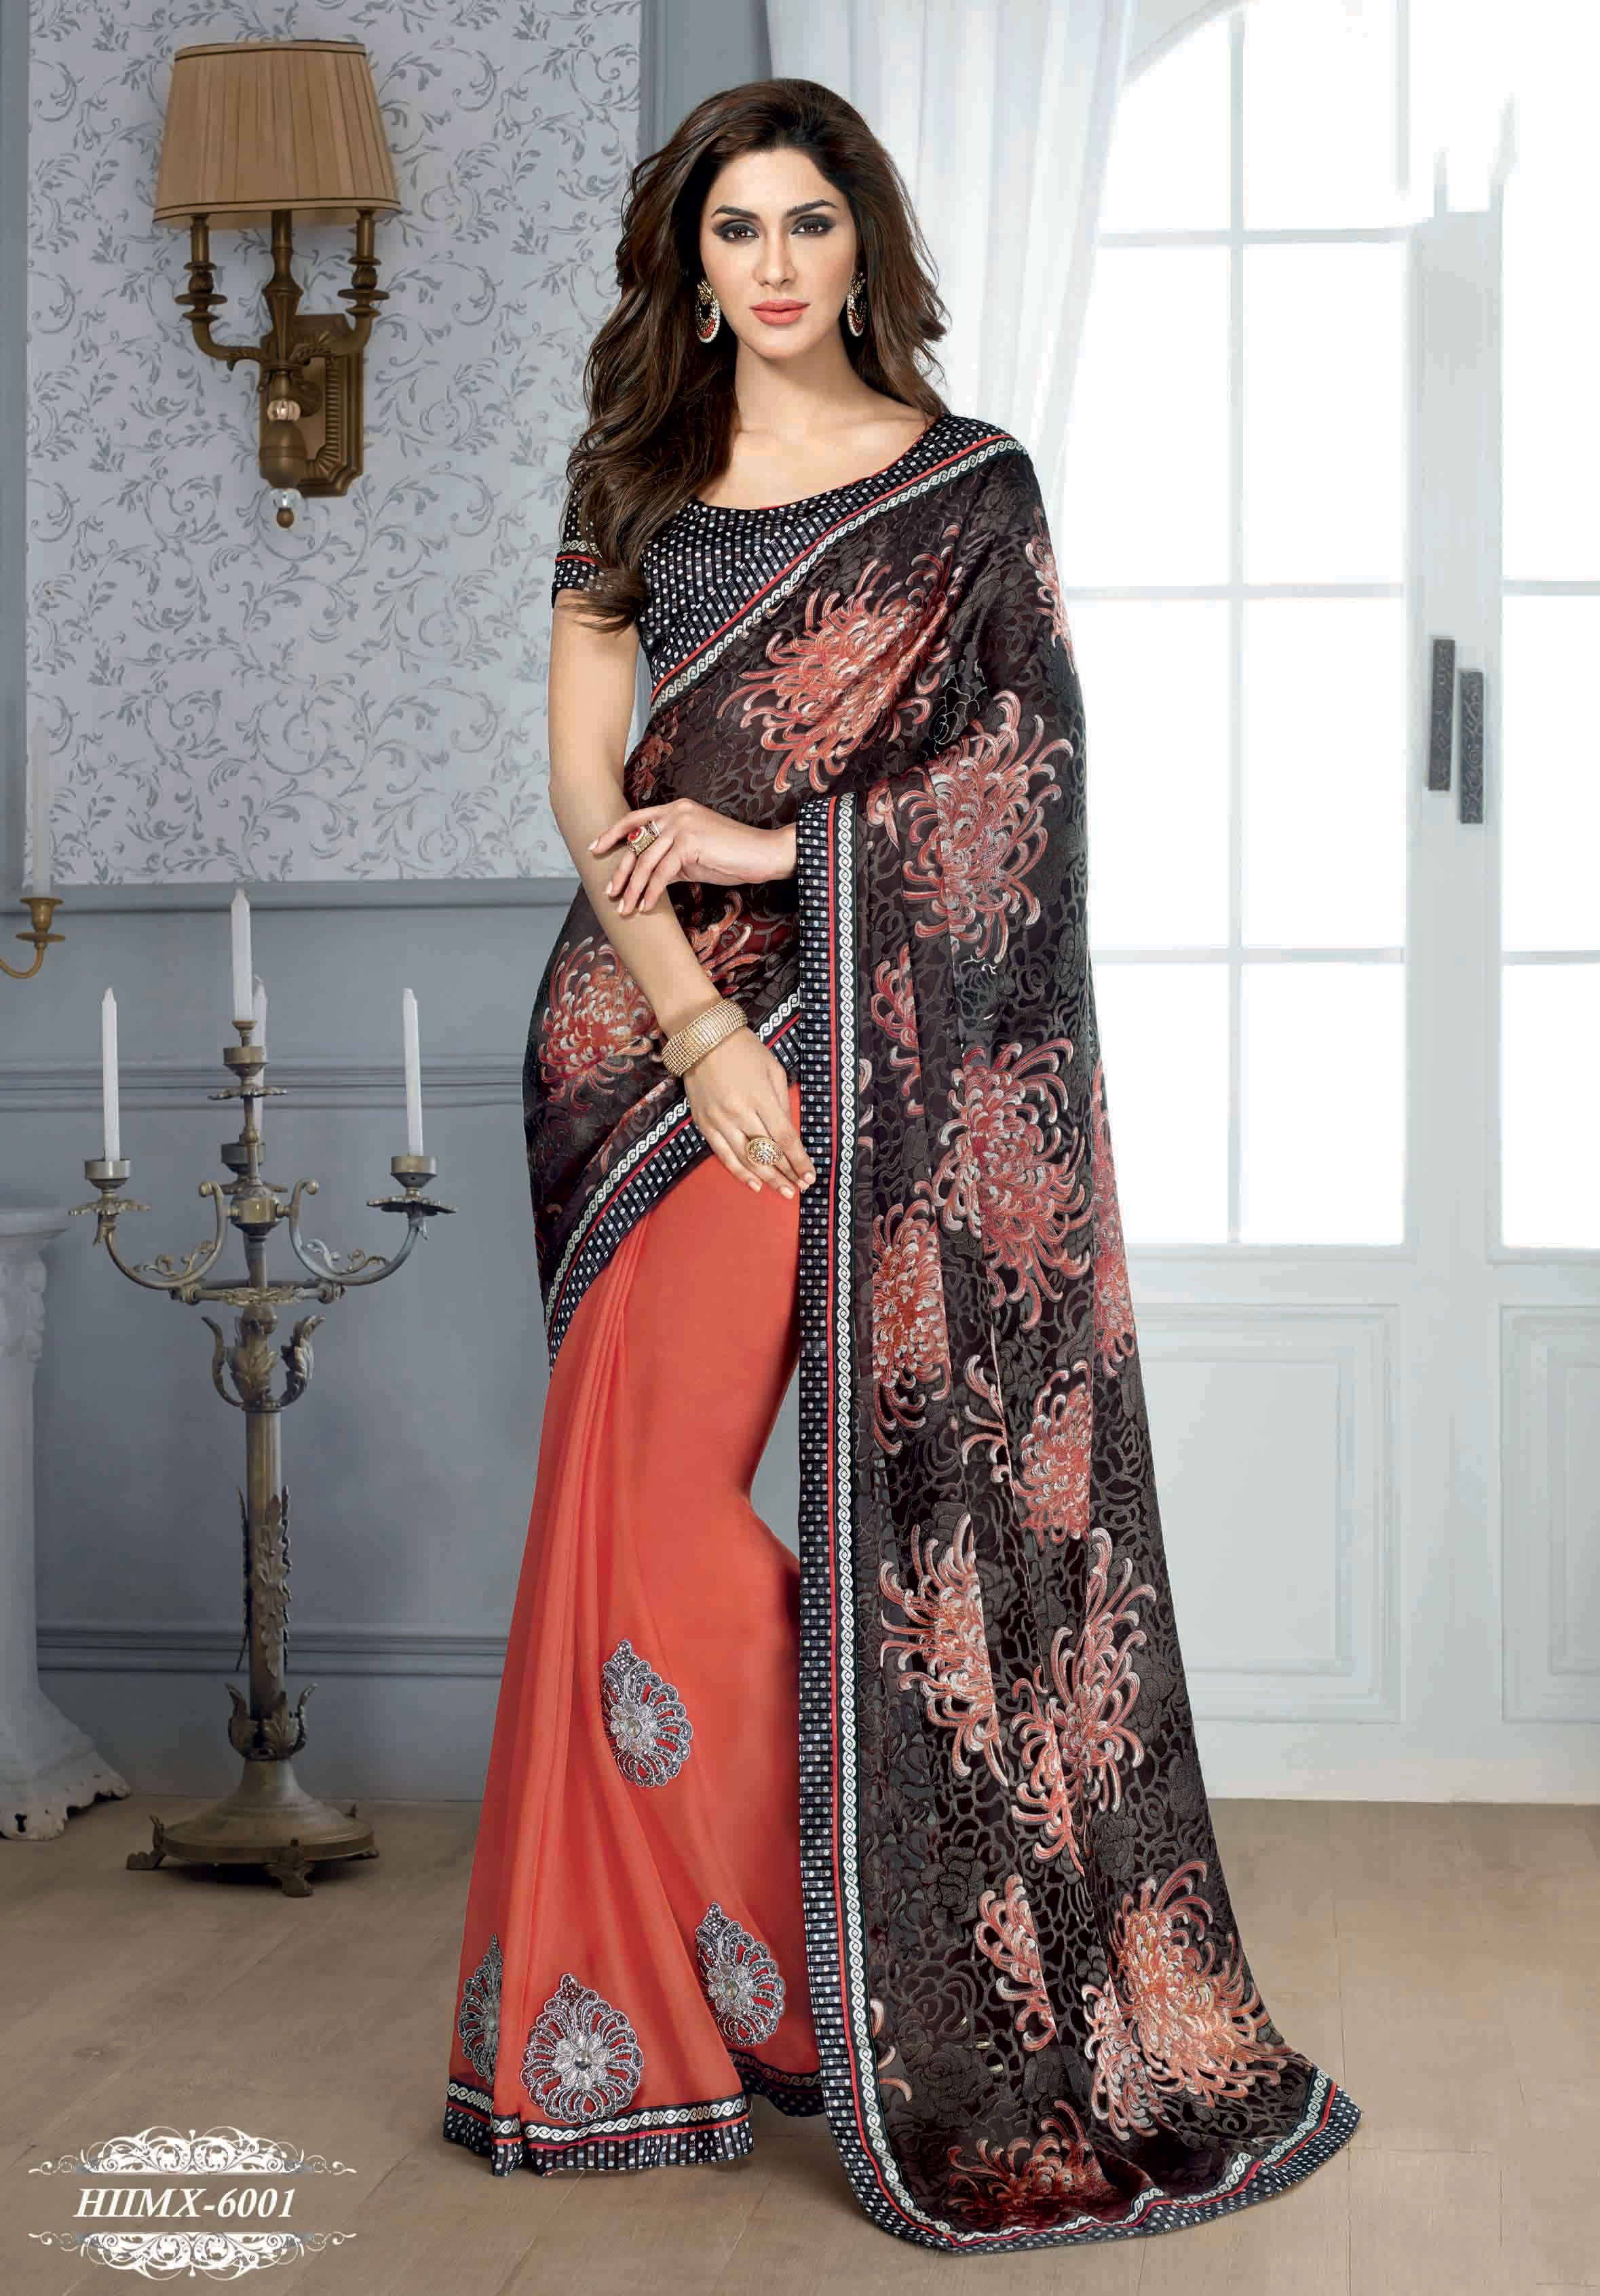 Fashion style Fancy Glamorous designer saree latest collection for woman